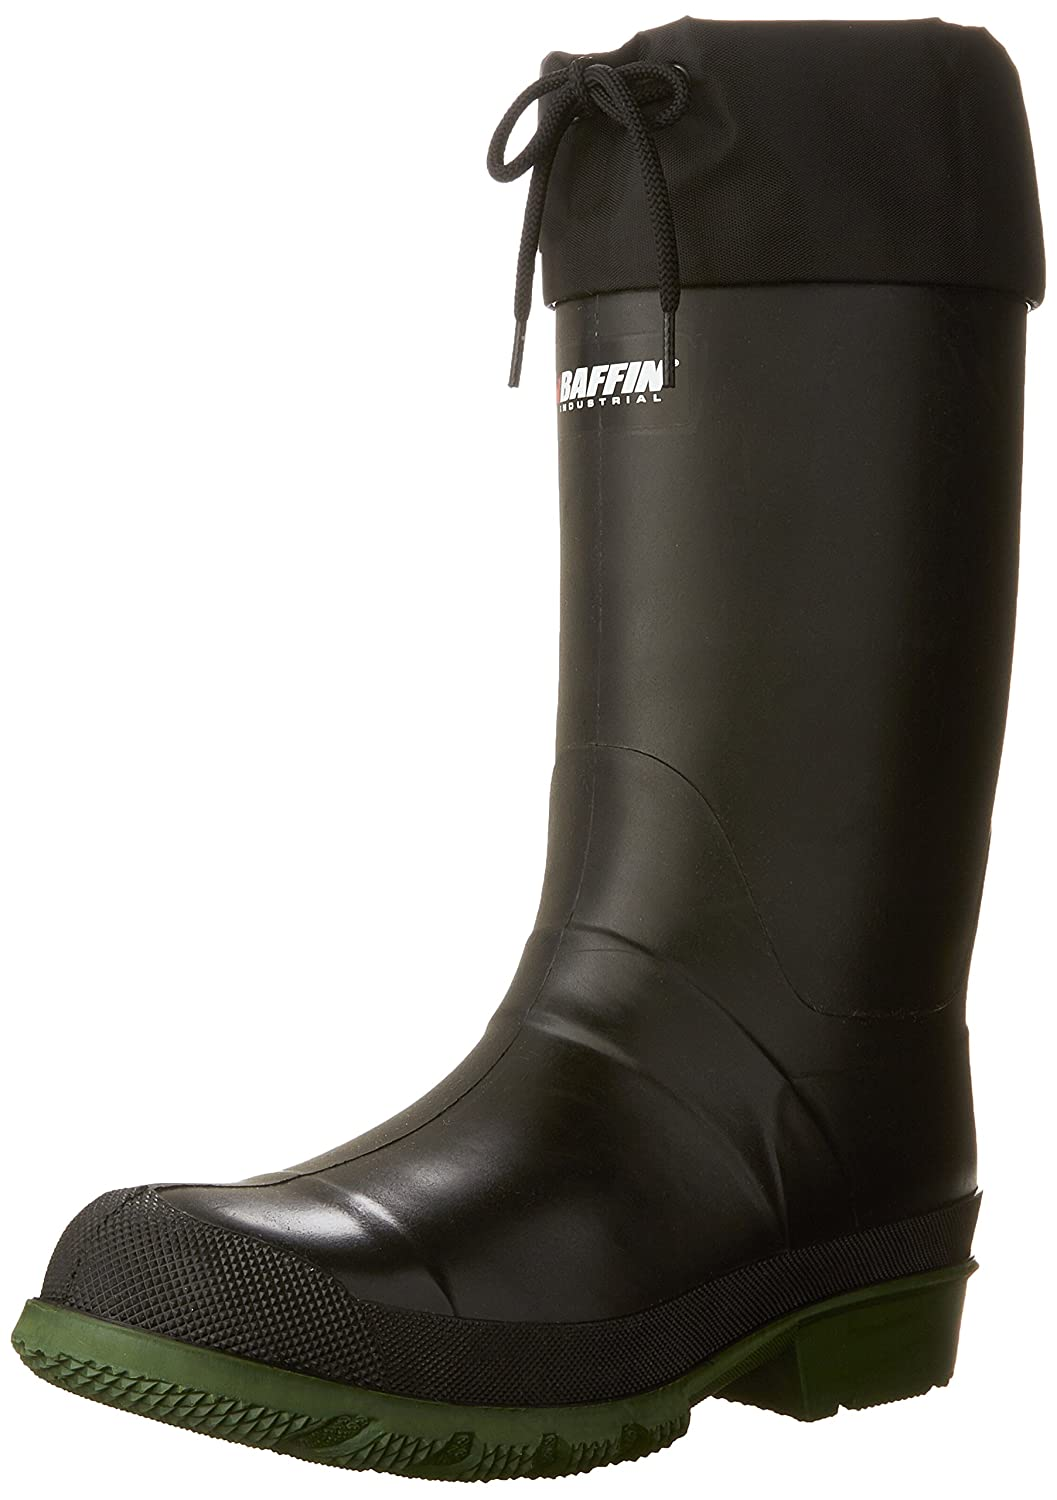 Baffin メンズ B002BH4GV4 8 D(M) US|Black/Forest Black/Forest 8 D(M) US